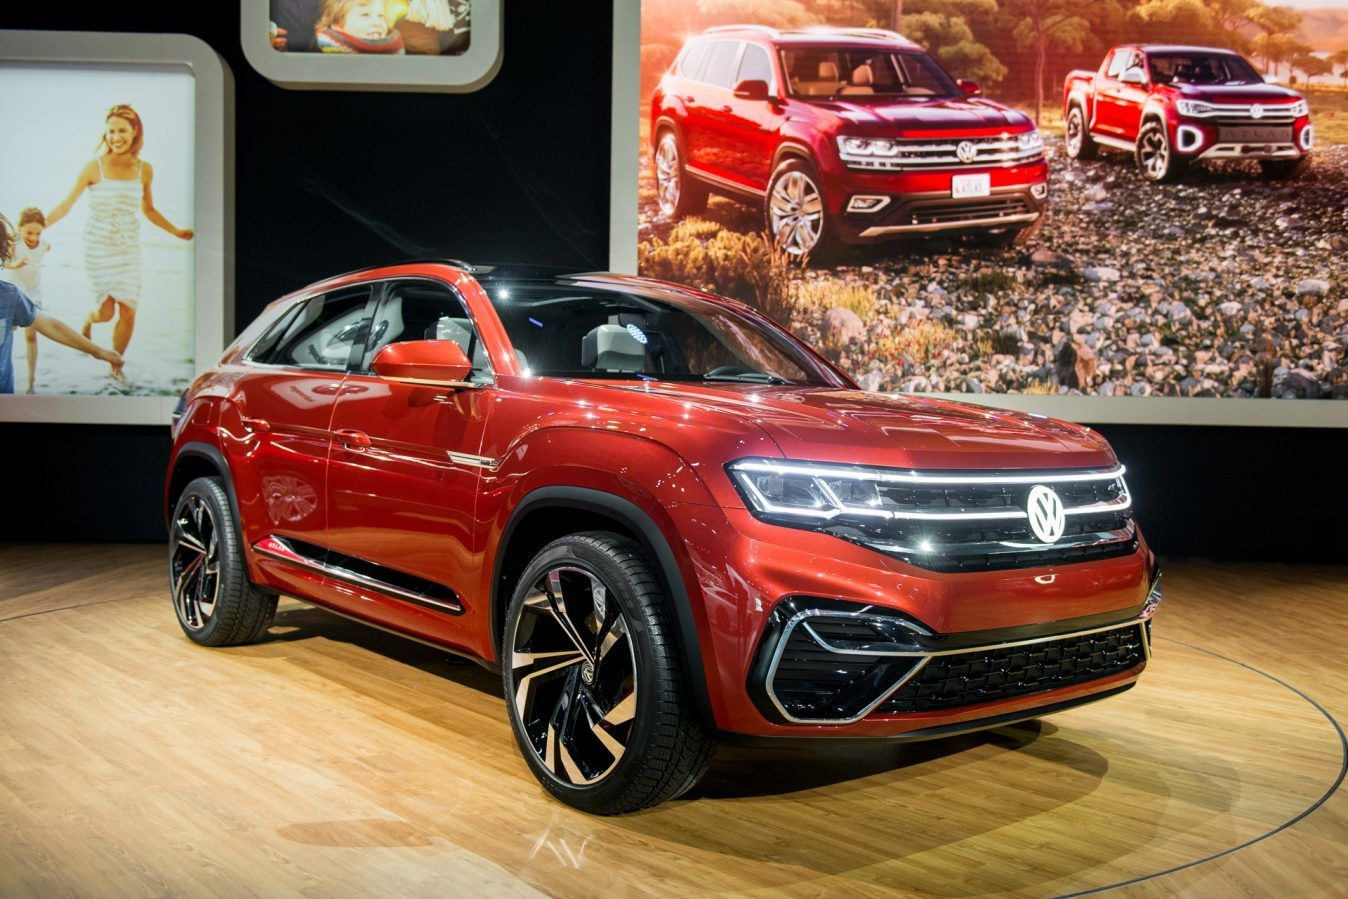 2020 VW Atlas Review, Interior, Price, Release Date